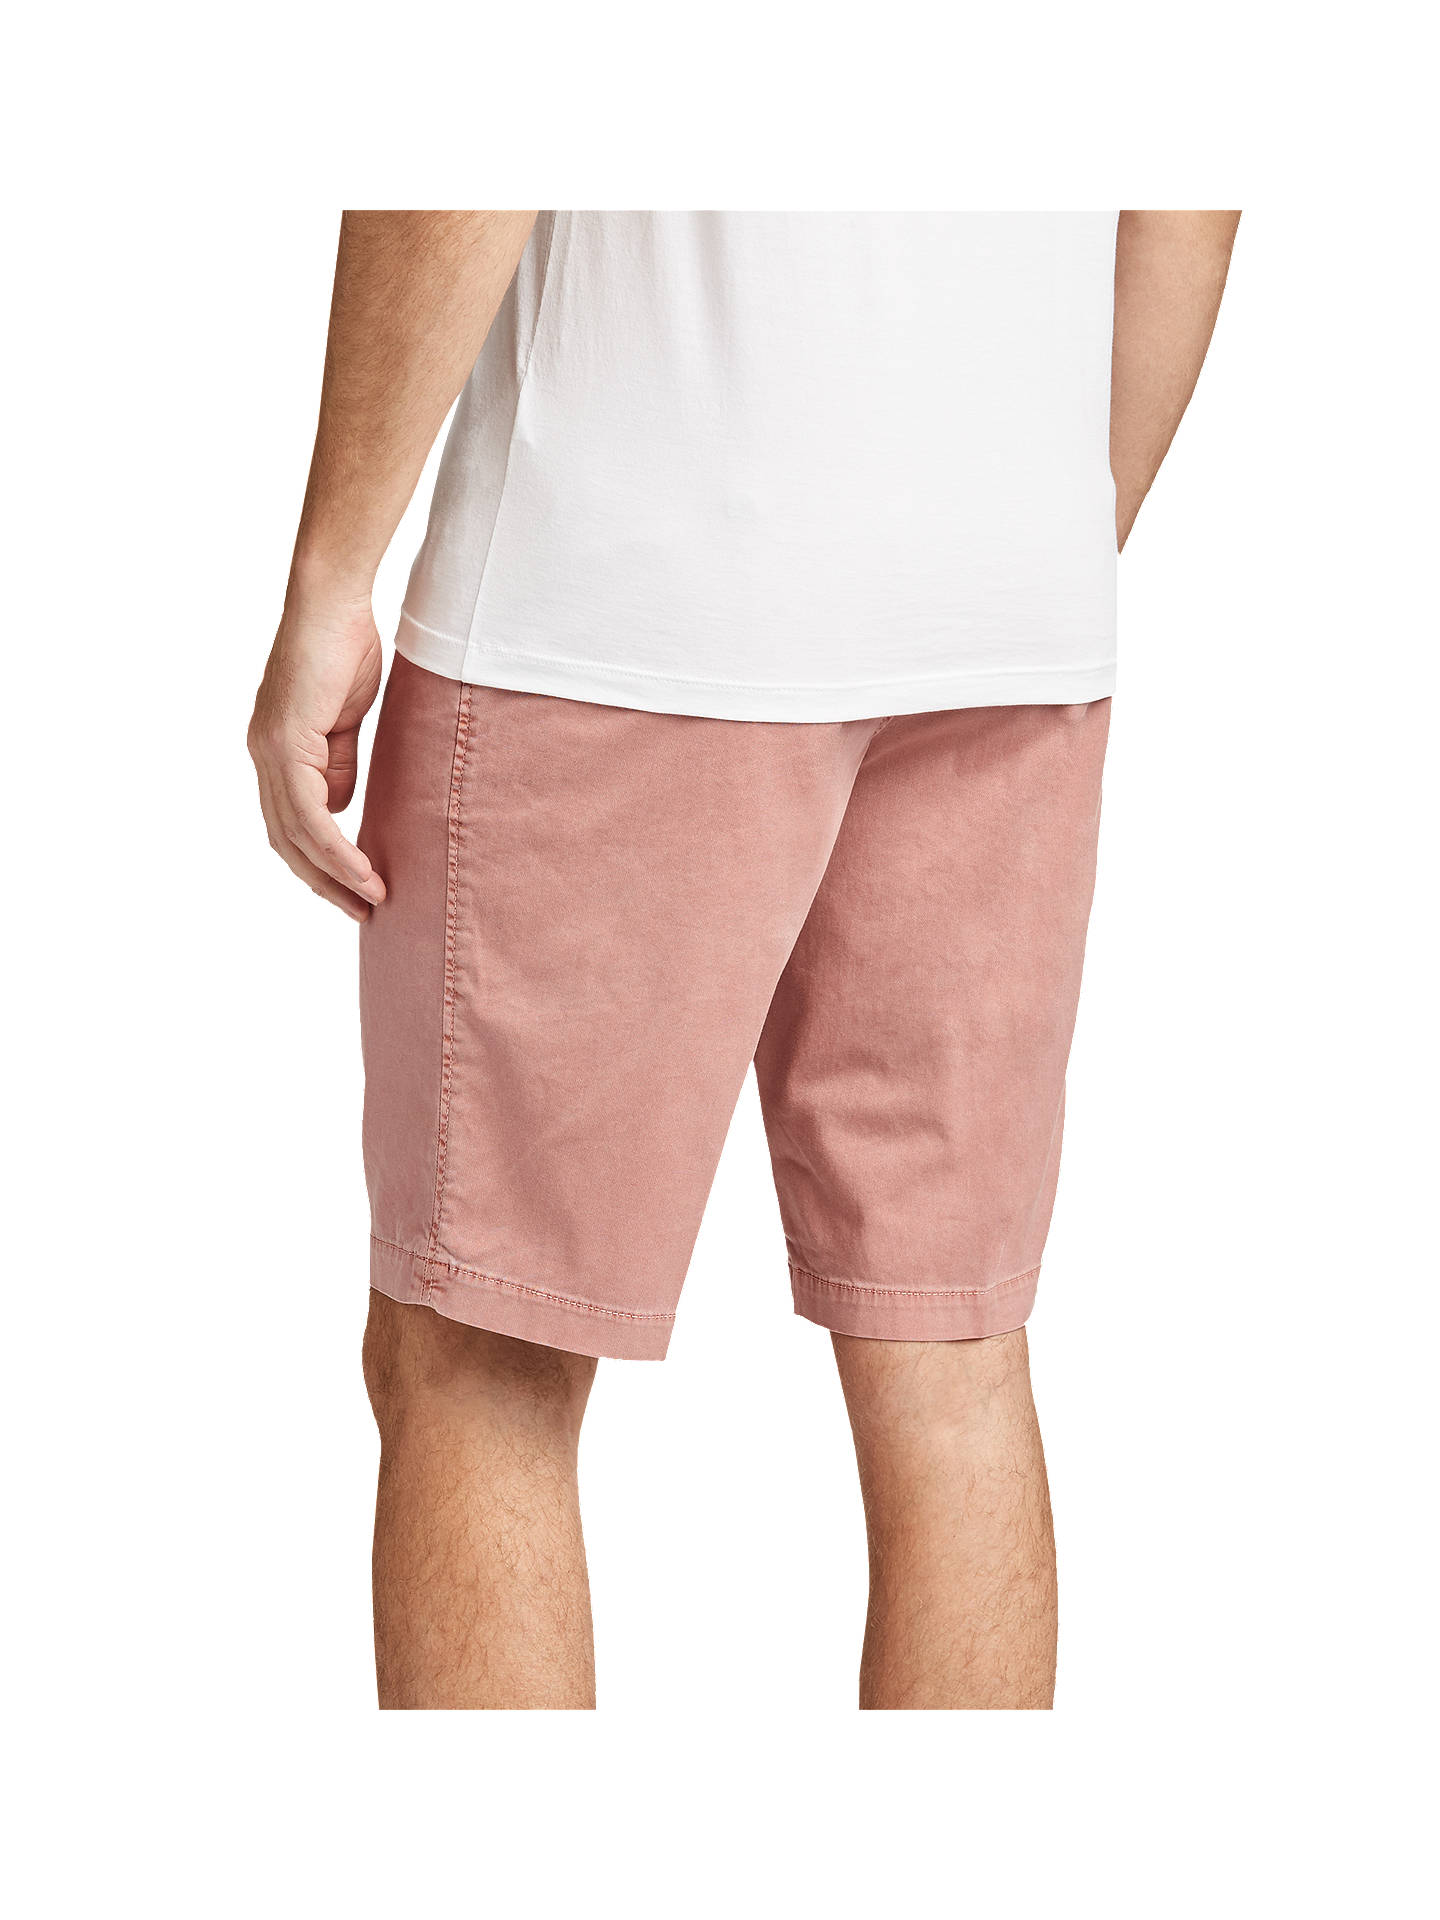 BuyBOSS Crigan Regular Fit Chino Shorts, Open Red, 30R Online at johnlewis.com